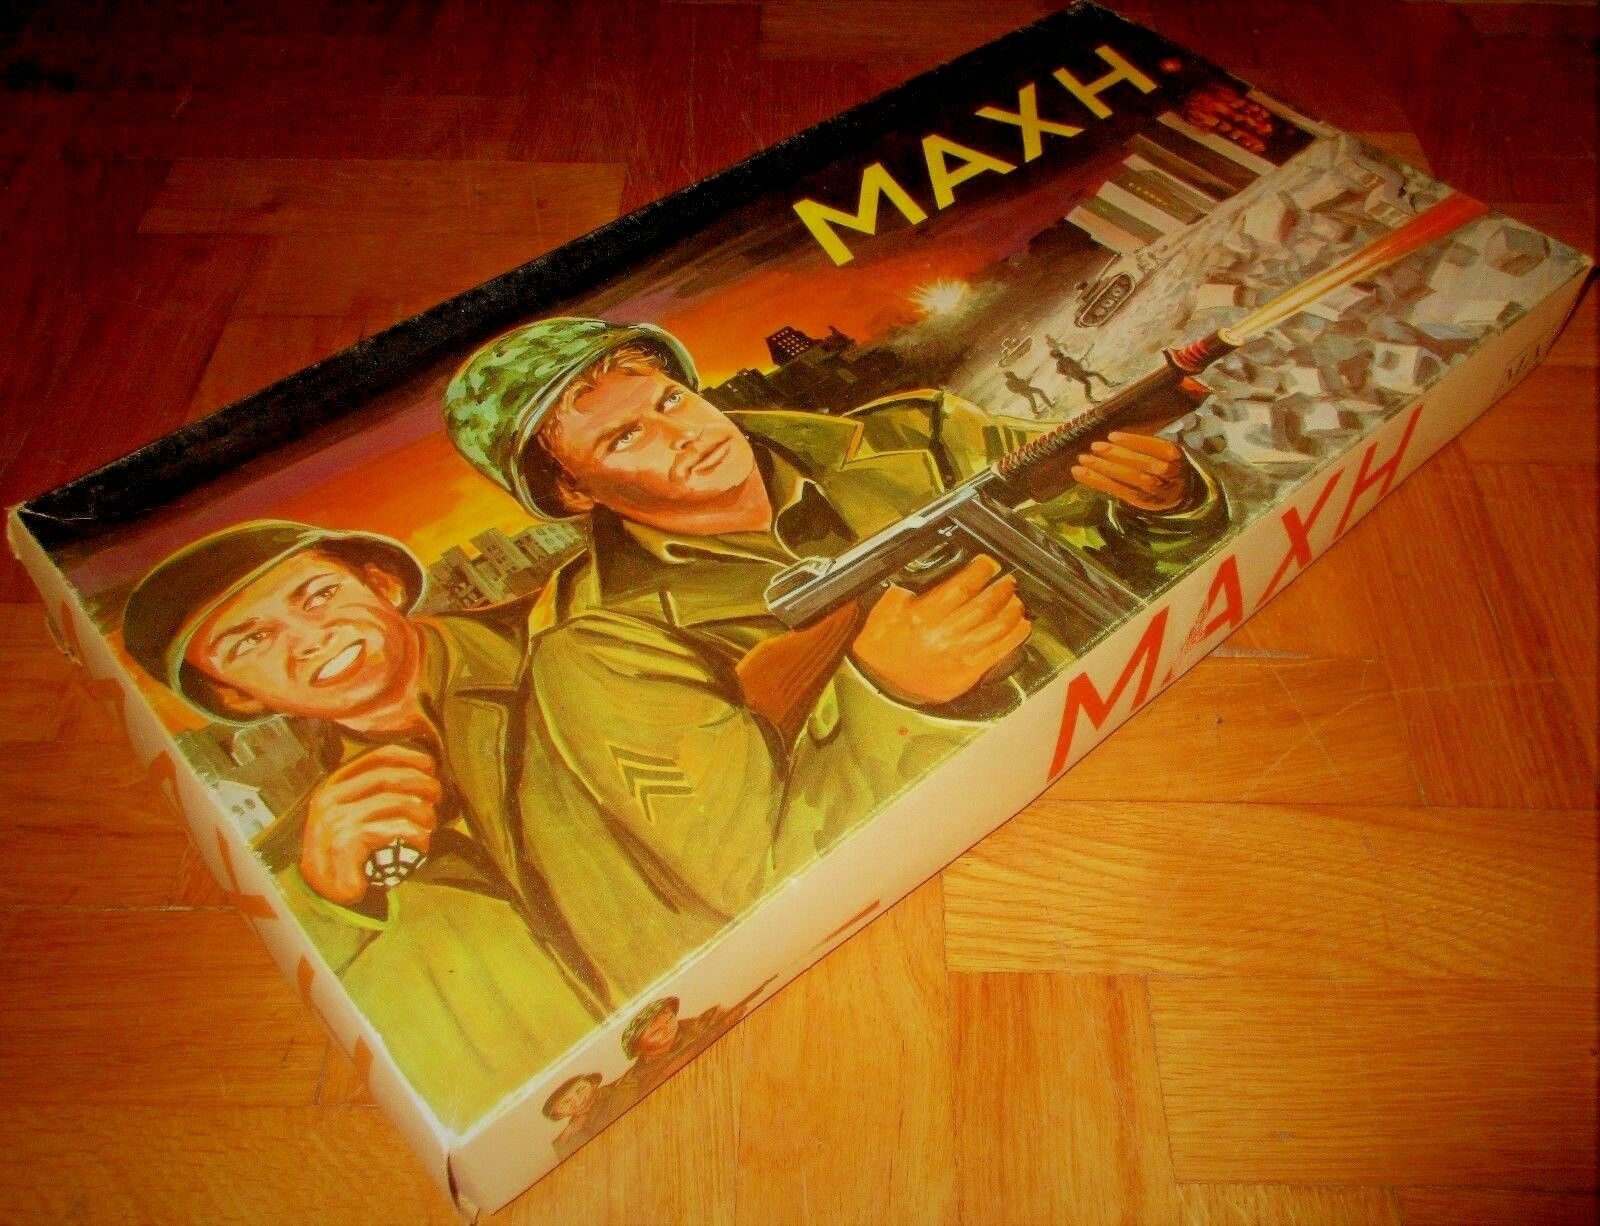 AMAZING RARE GREEK BOARD GAME GAME GAME - COMBAT - TV WAR SHOW FROM 70s FROM M L NEW 6a609d